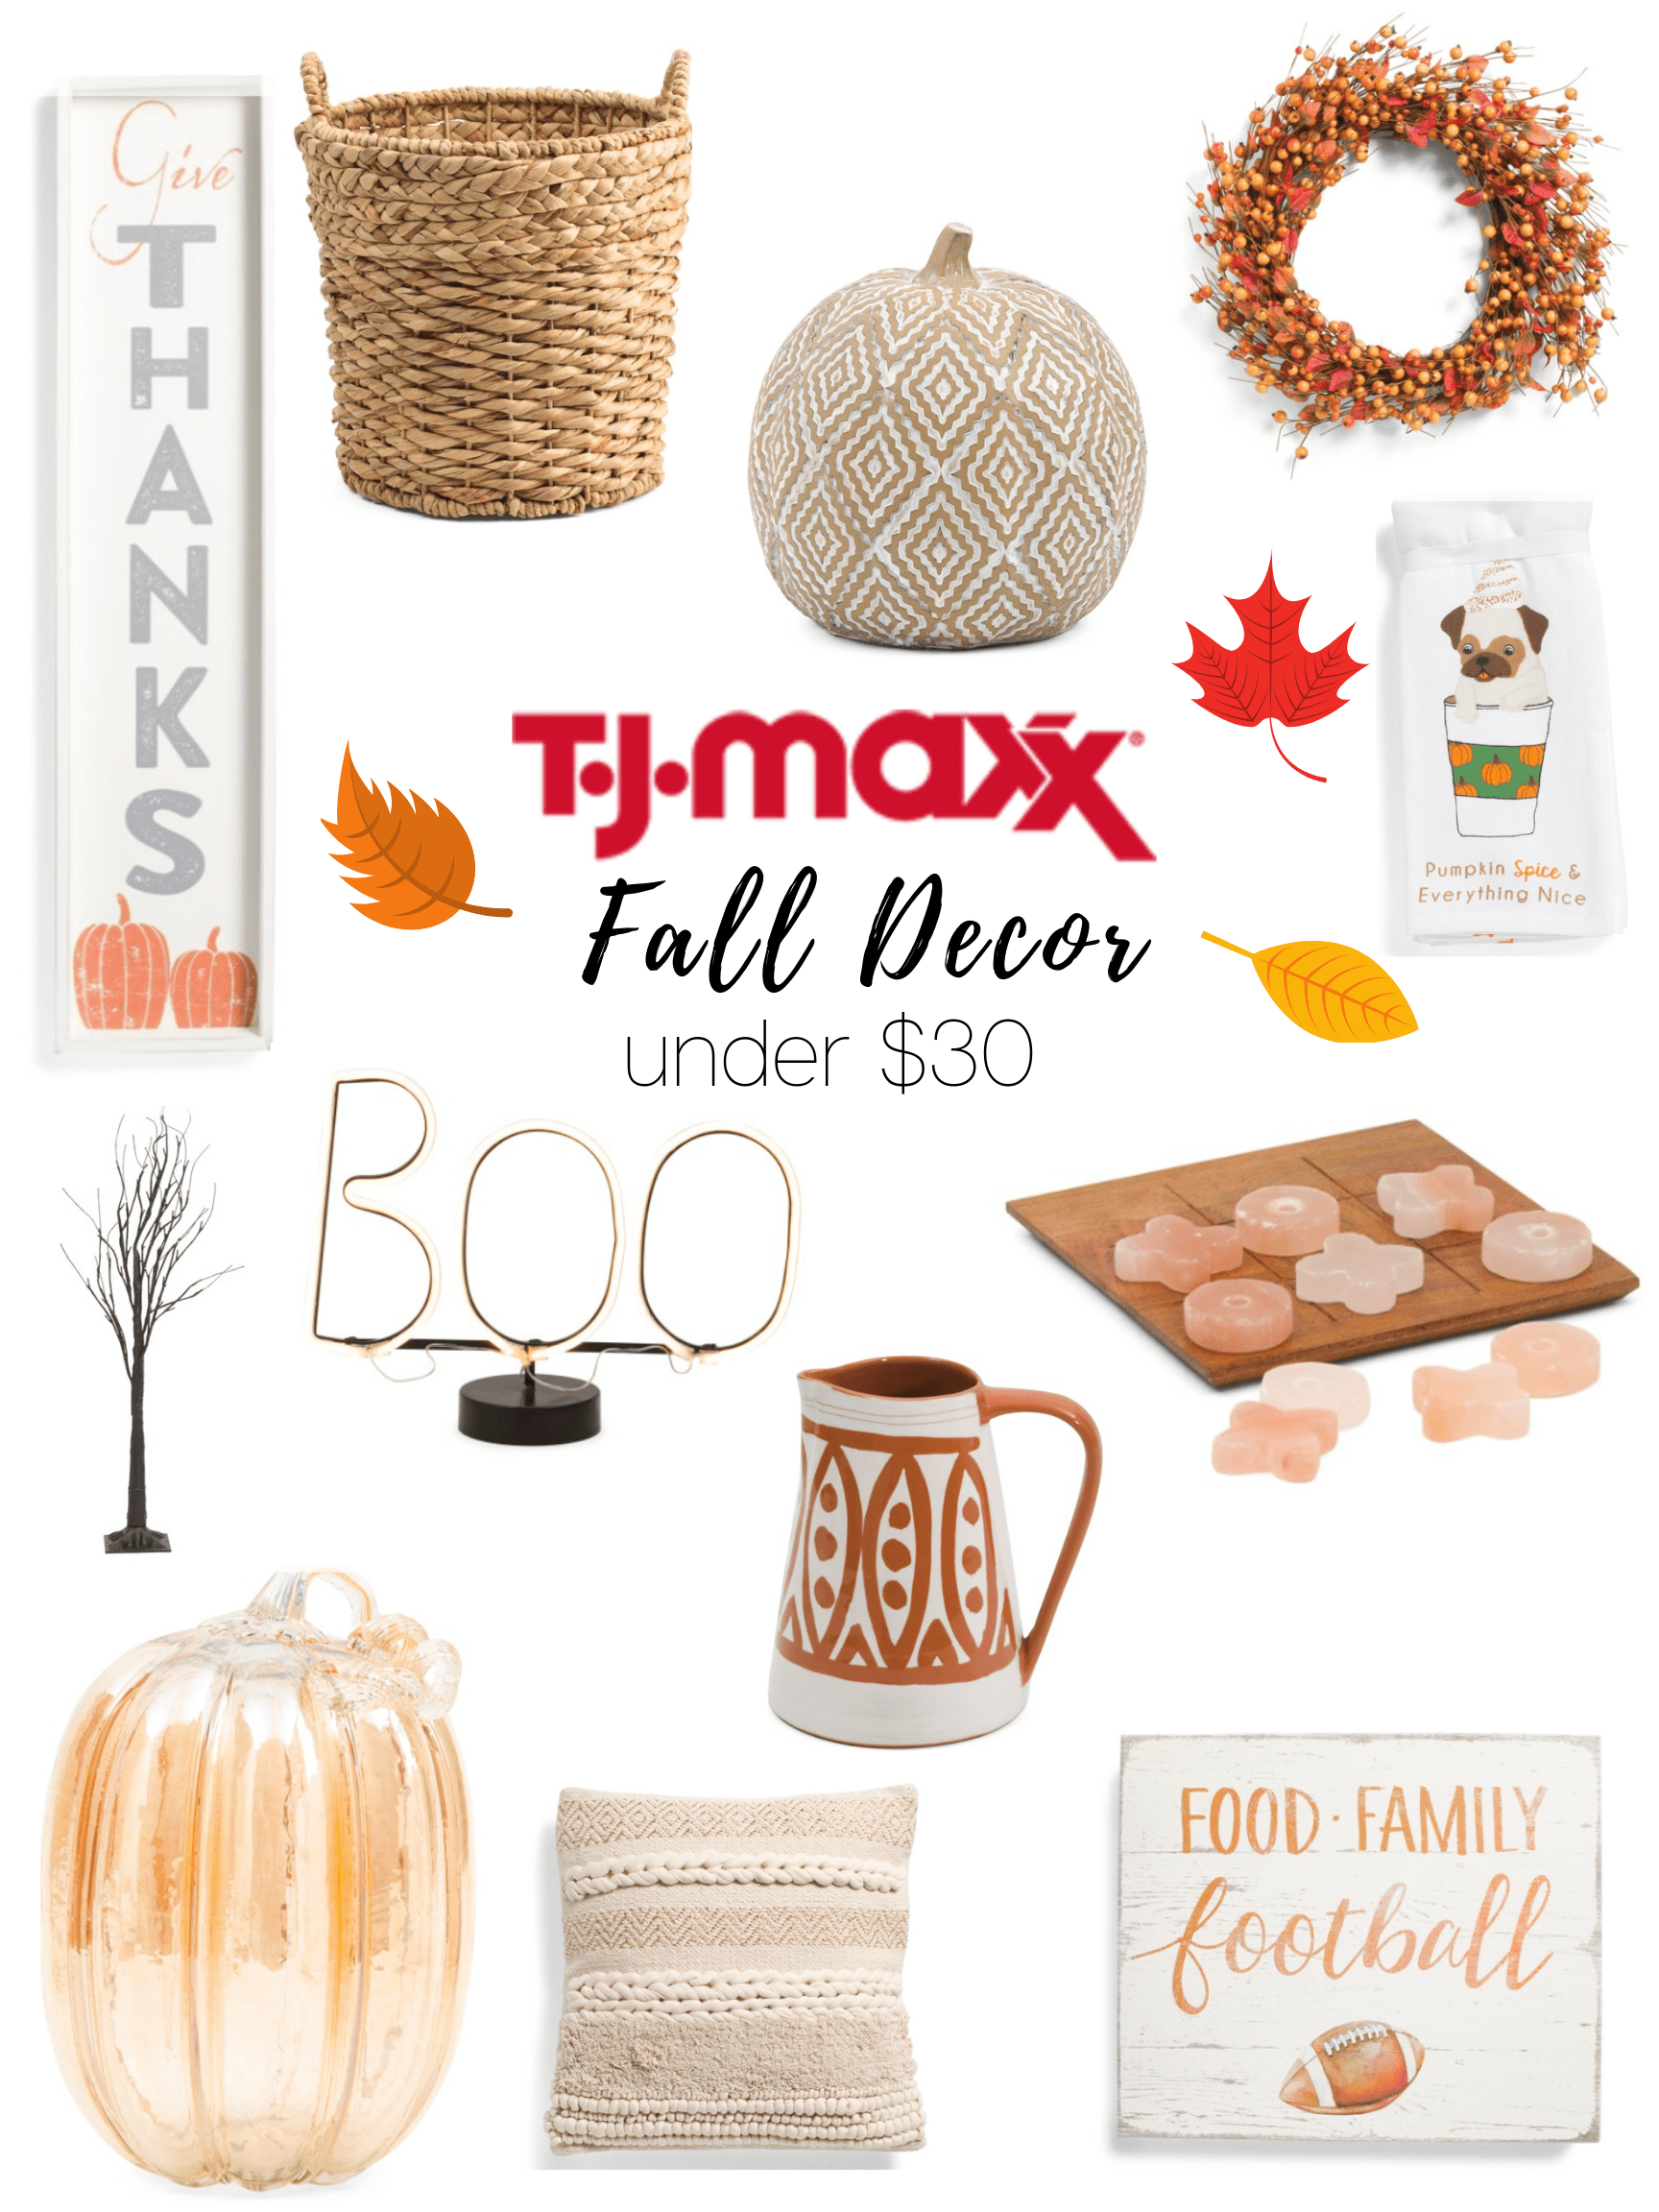 T J Maxx Fall Home Decor Under 30 The Life Of A Womann Fall Home Decor Autumn Home Fall Decor